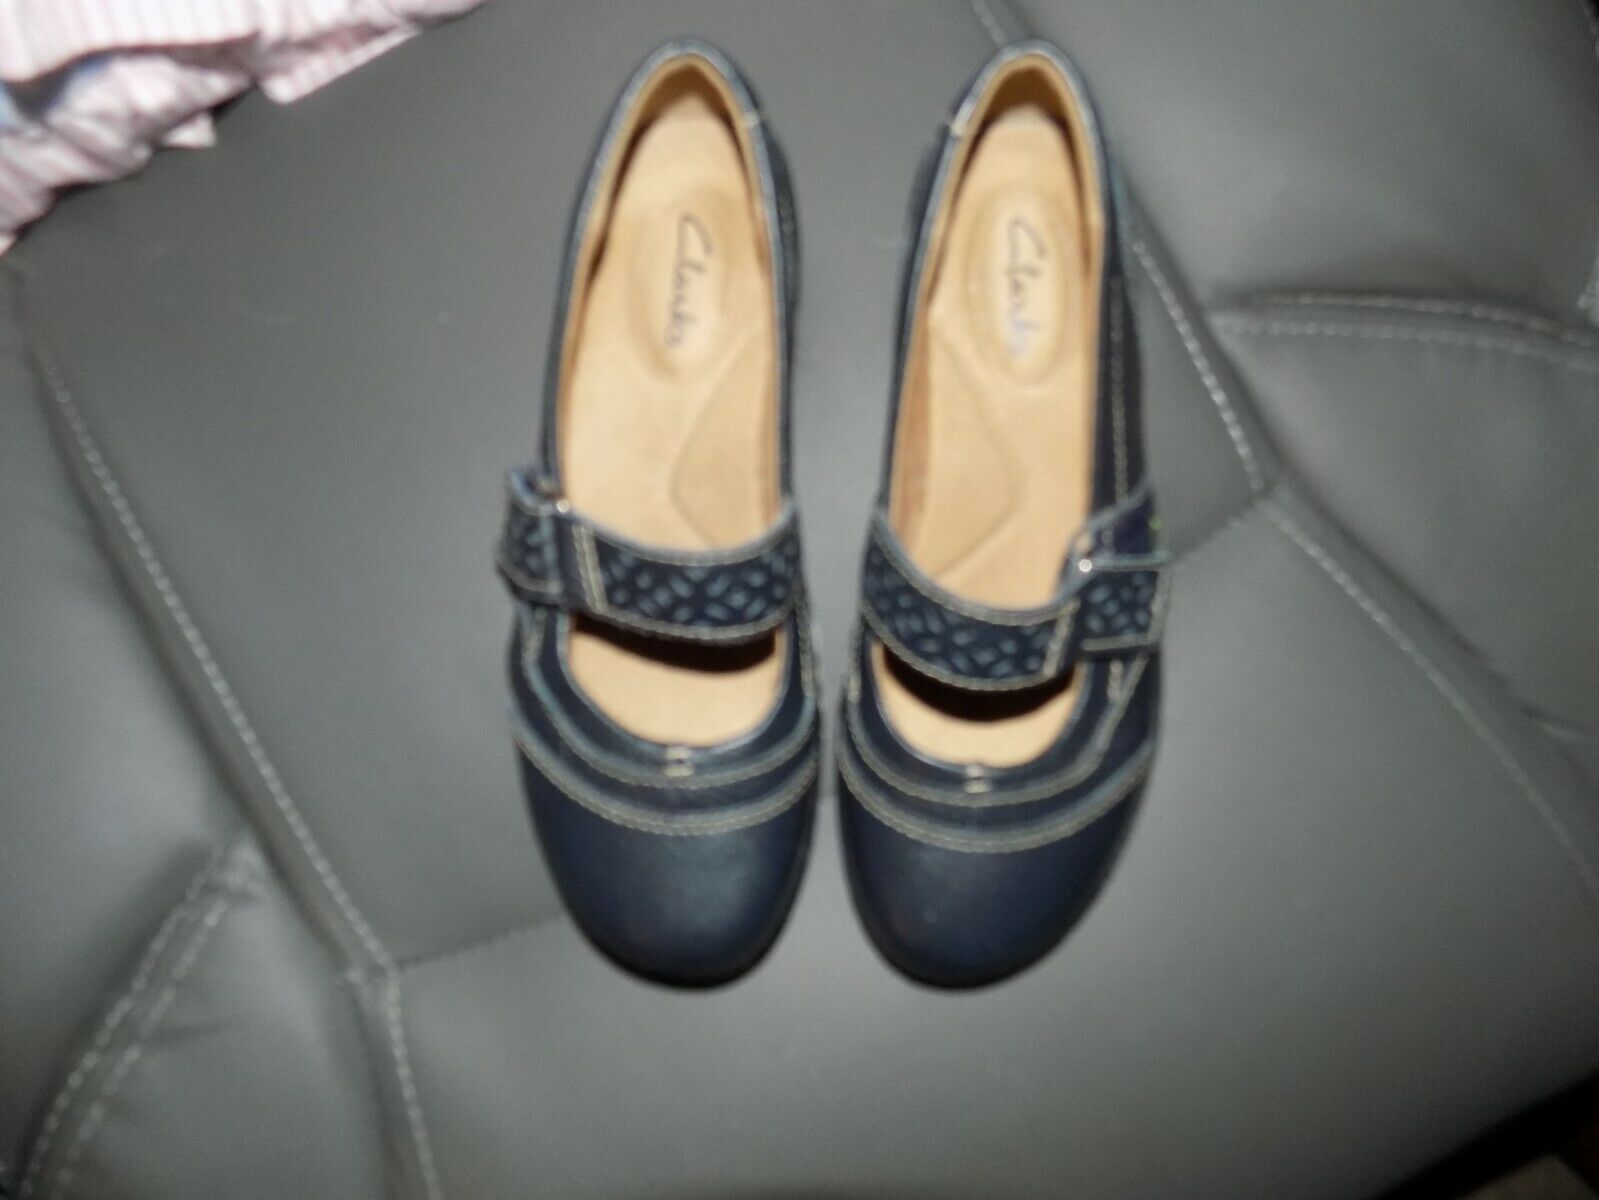 Primary image for Clarks Artisan Blue Leather Mary Janes Flats Shoes Size 5M Women's EUC